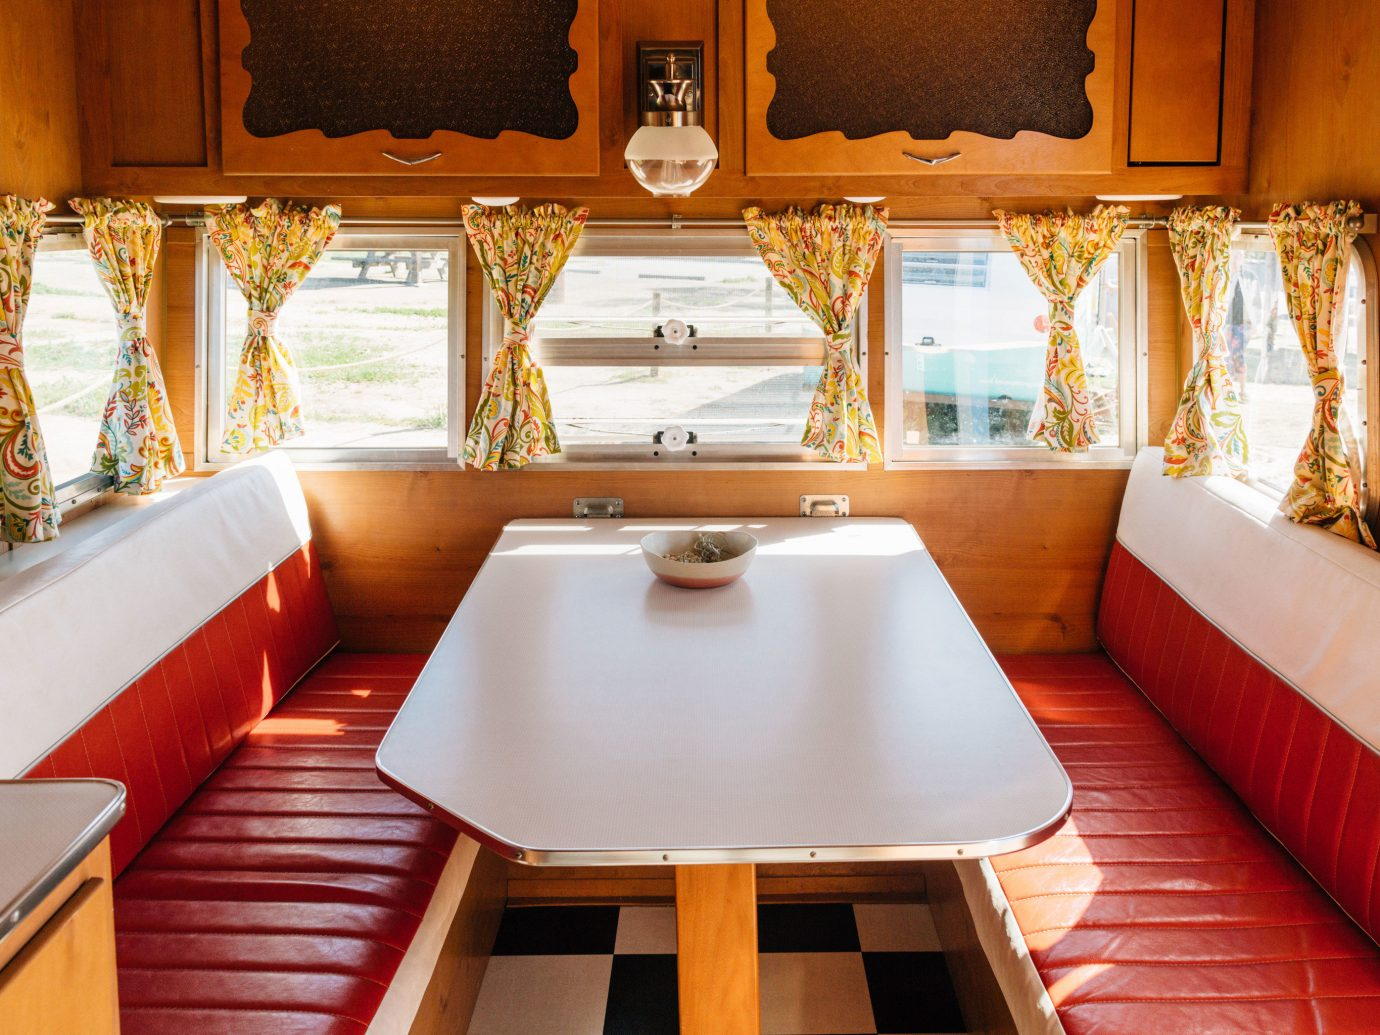 Glamping Luxury Travel Outdoors + Adventure indoor table window room vehicle interior design estate Suite home cottage furniture